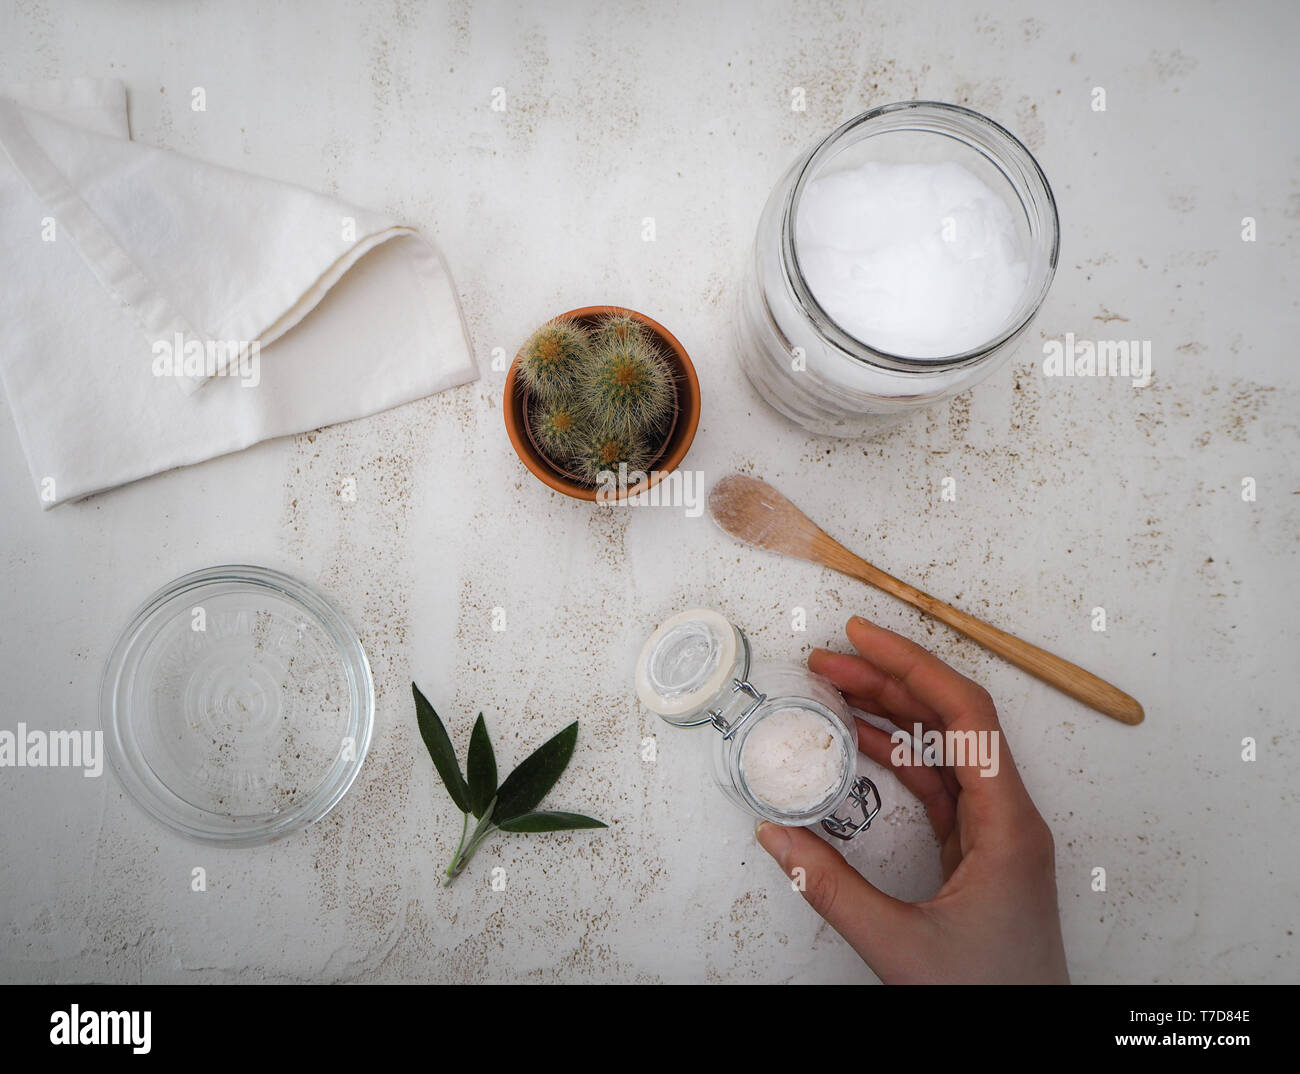 Woman making homemade vegan deodorant with ingredients such as coconut oil and baking soda following a zero waste and plastic free lifestyle Stock Photo